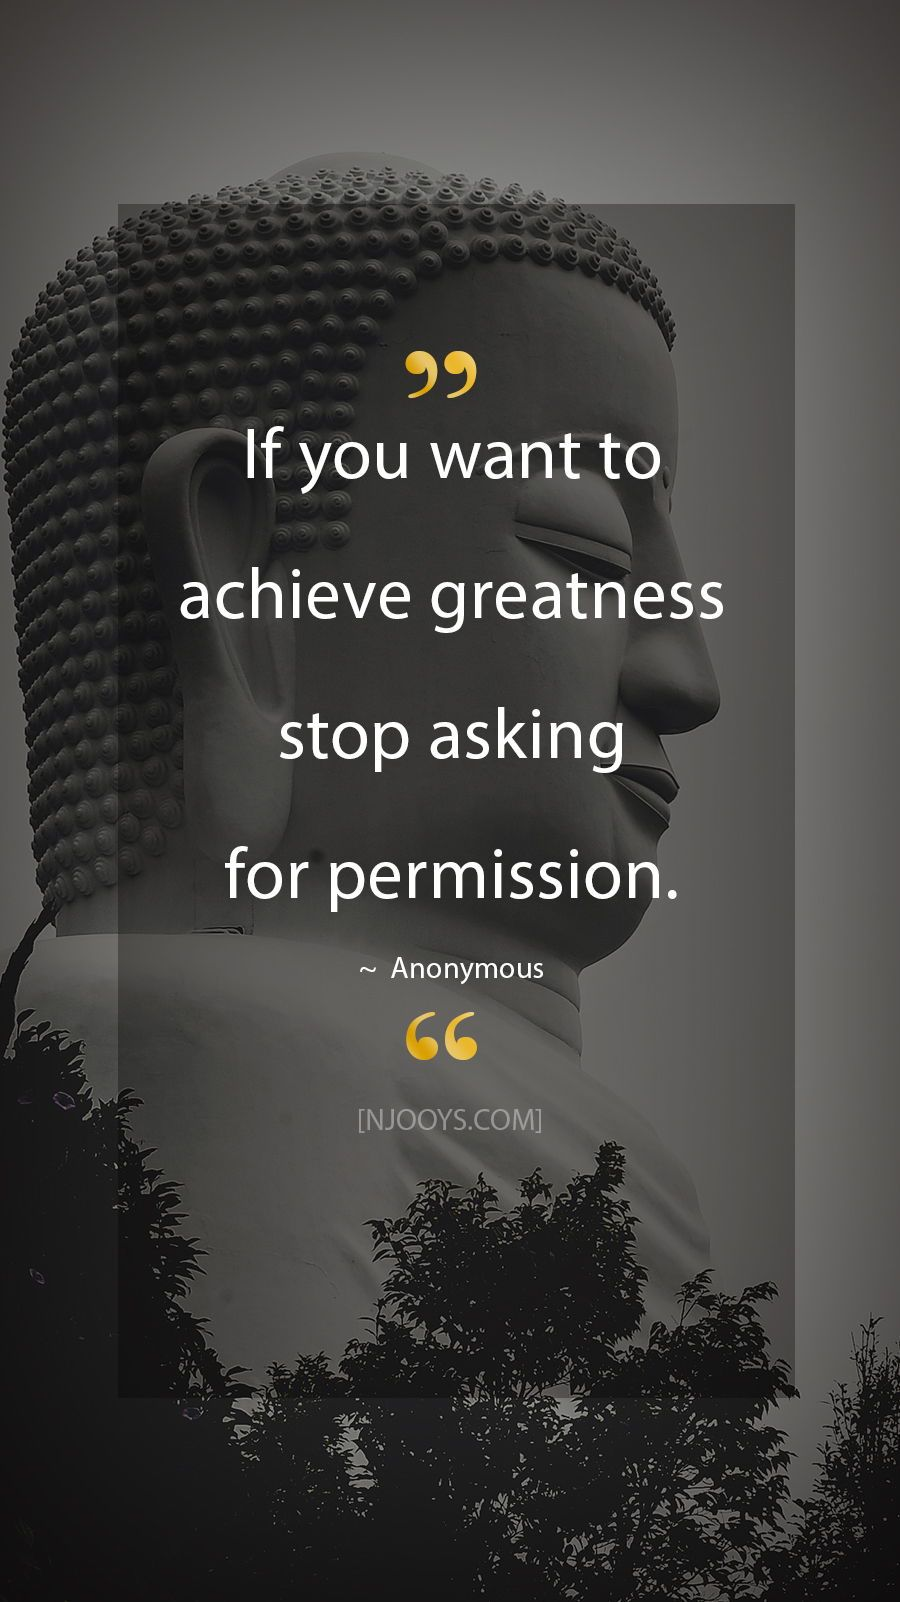 Anonymous Quotes If You Want To Achieve Greatness Stop Asking For Permission A Anonymous Quotes Motivational Picture Quotes Inspirational Quotes Motivation